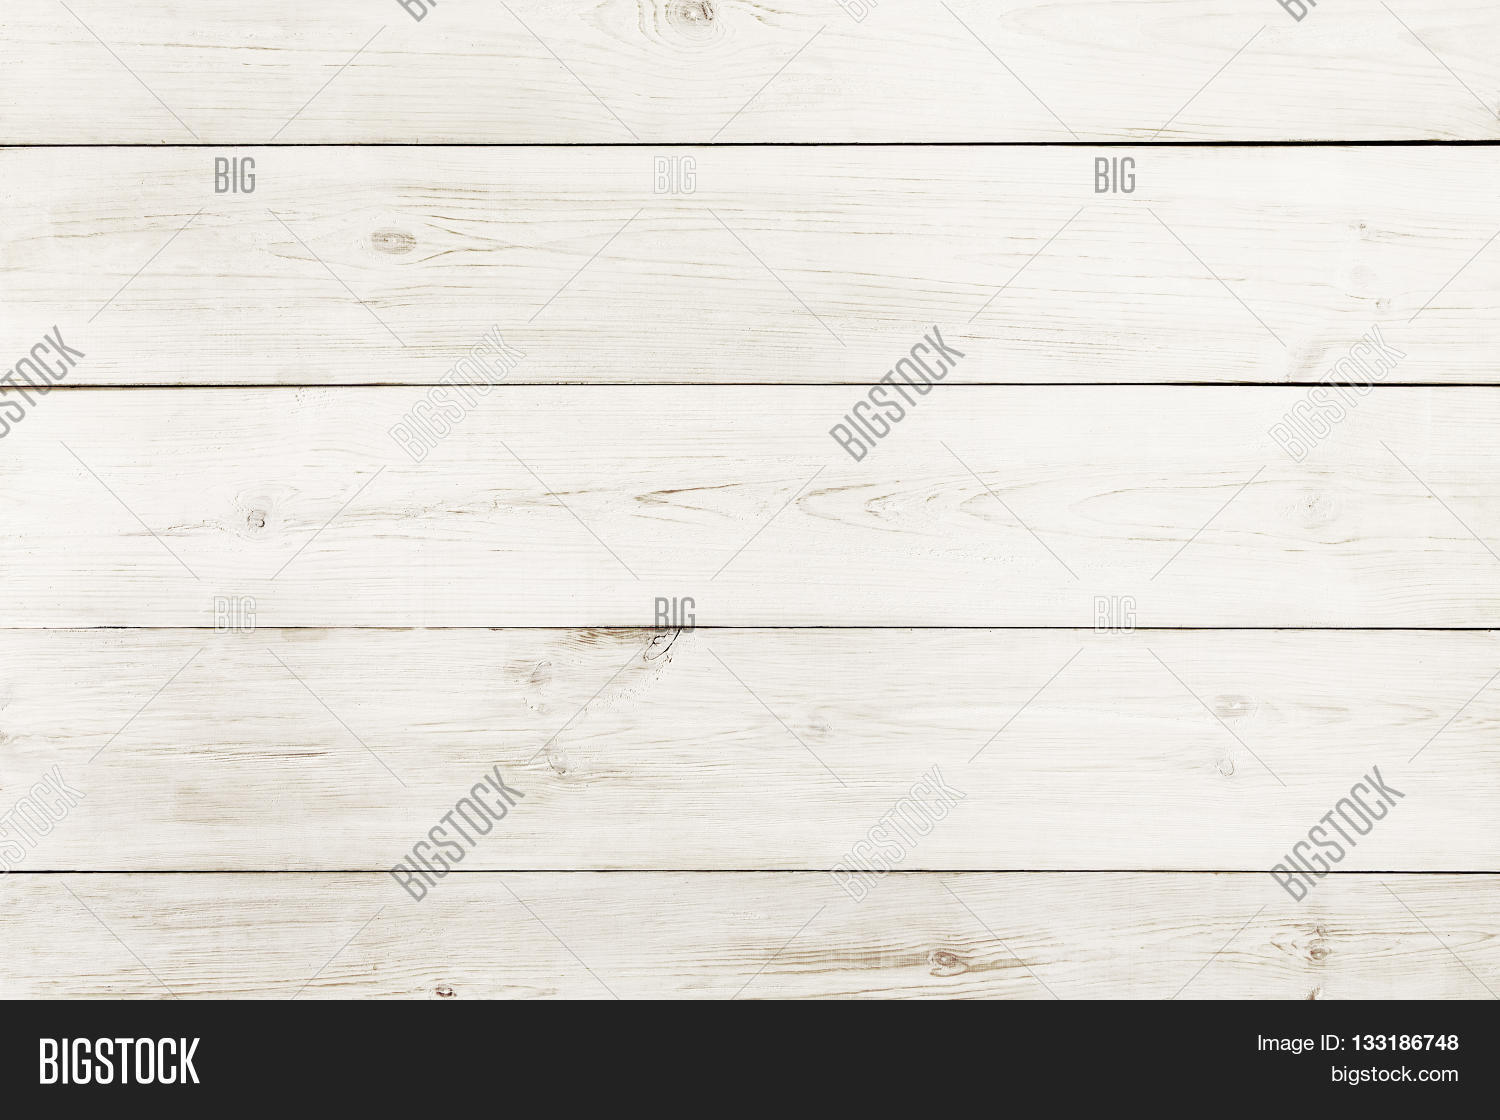 White wood floor texture and background  White painted wood texture  background  Rustic  shabby. White Wood Floor Texture Background Image   Photo   Bigstock